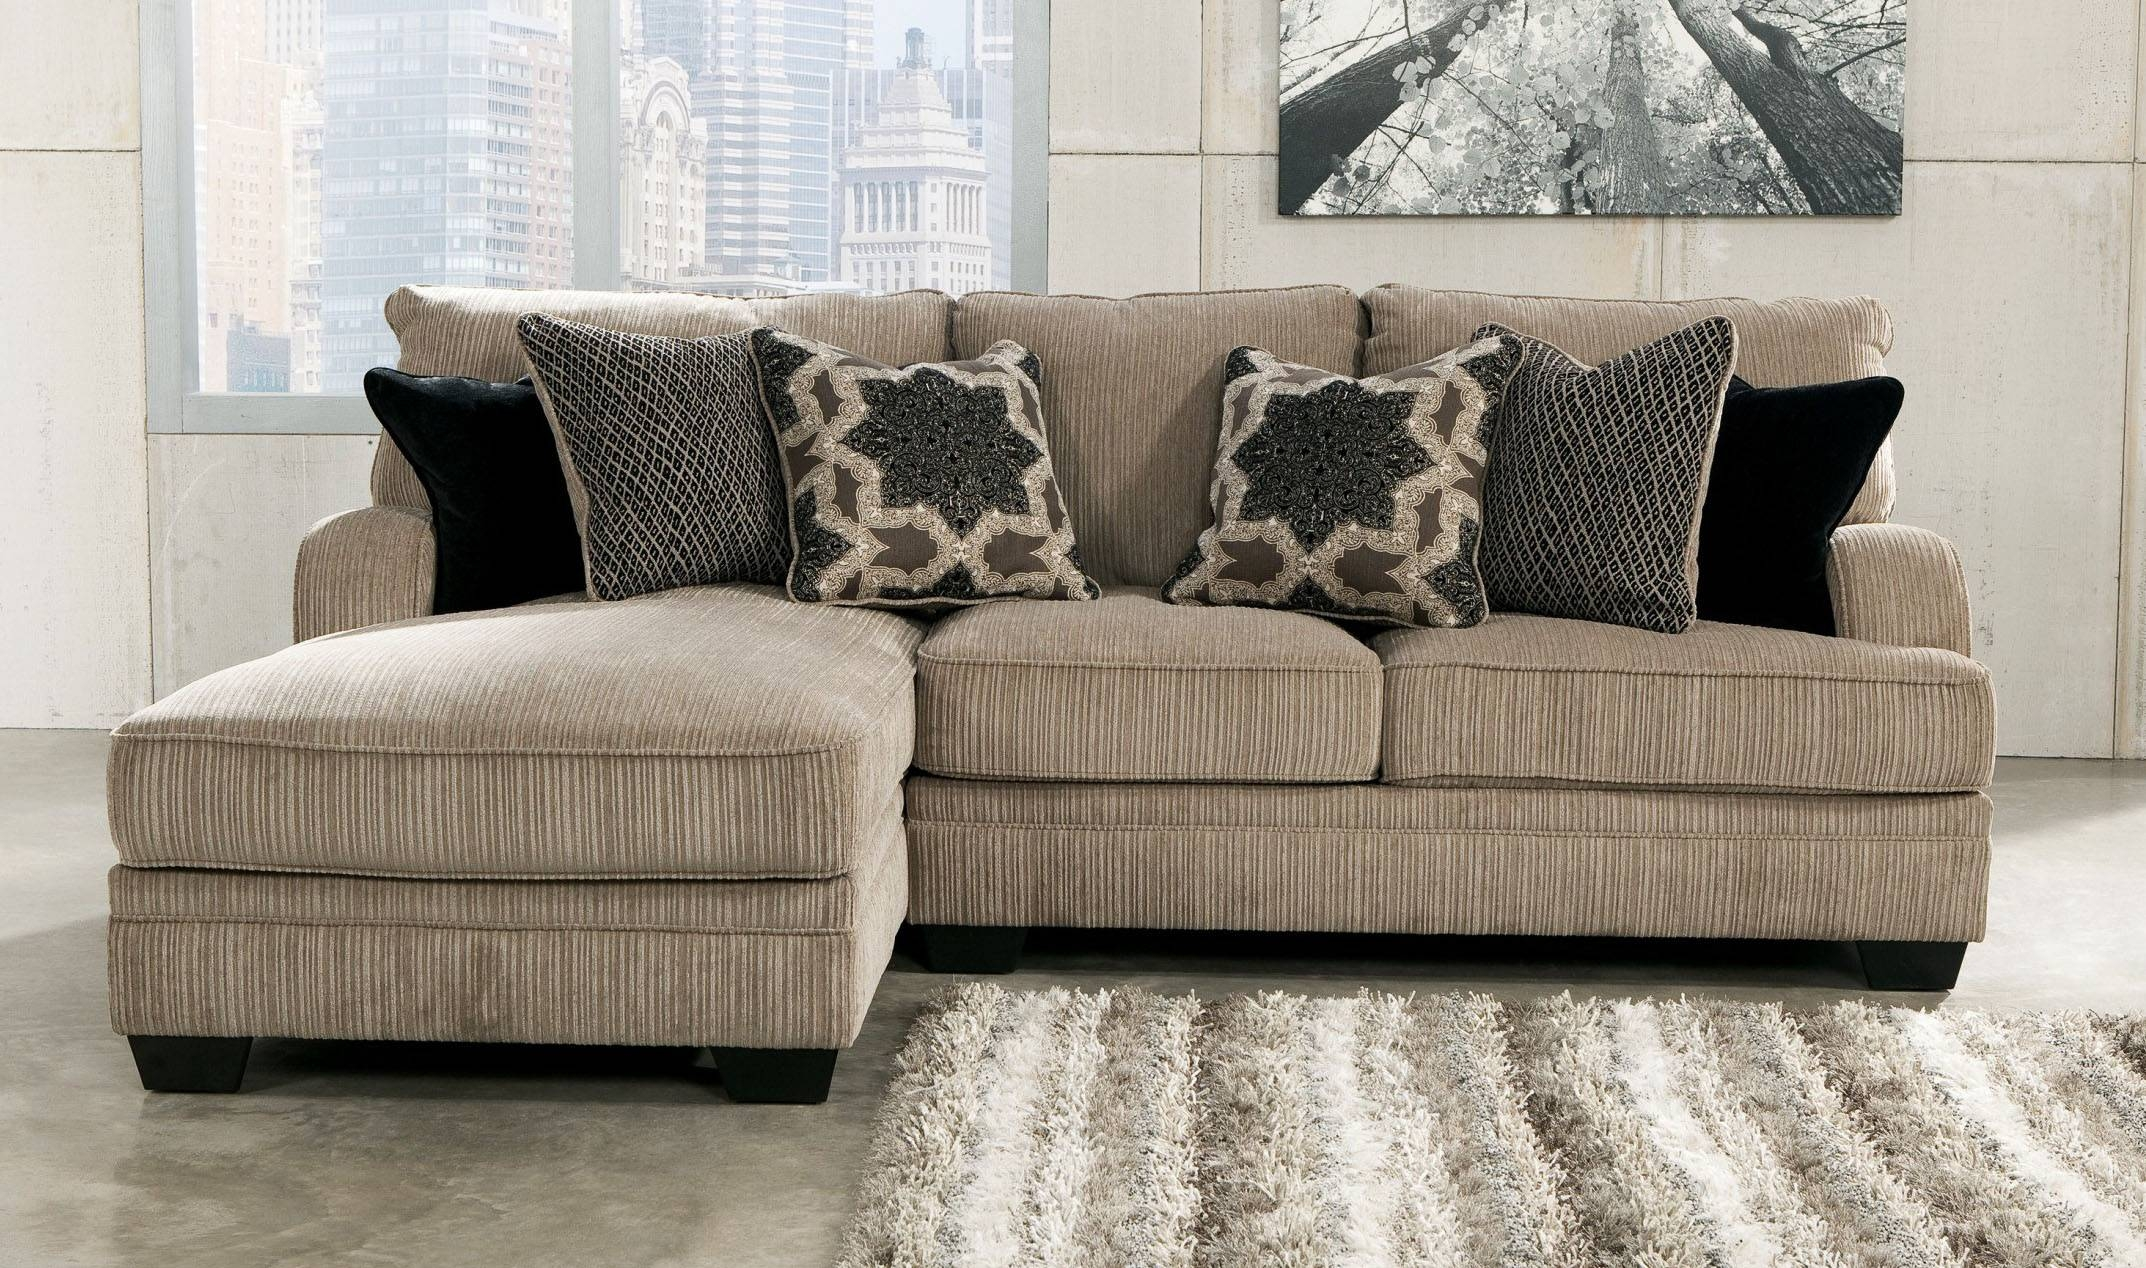 The Most Popular Small Scale Sectional Sofa 26 In Small Leather Pertaining To Small Scale Leather Sectional Sofas (View 14 of 15)